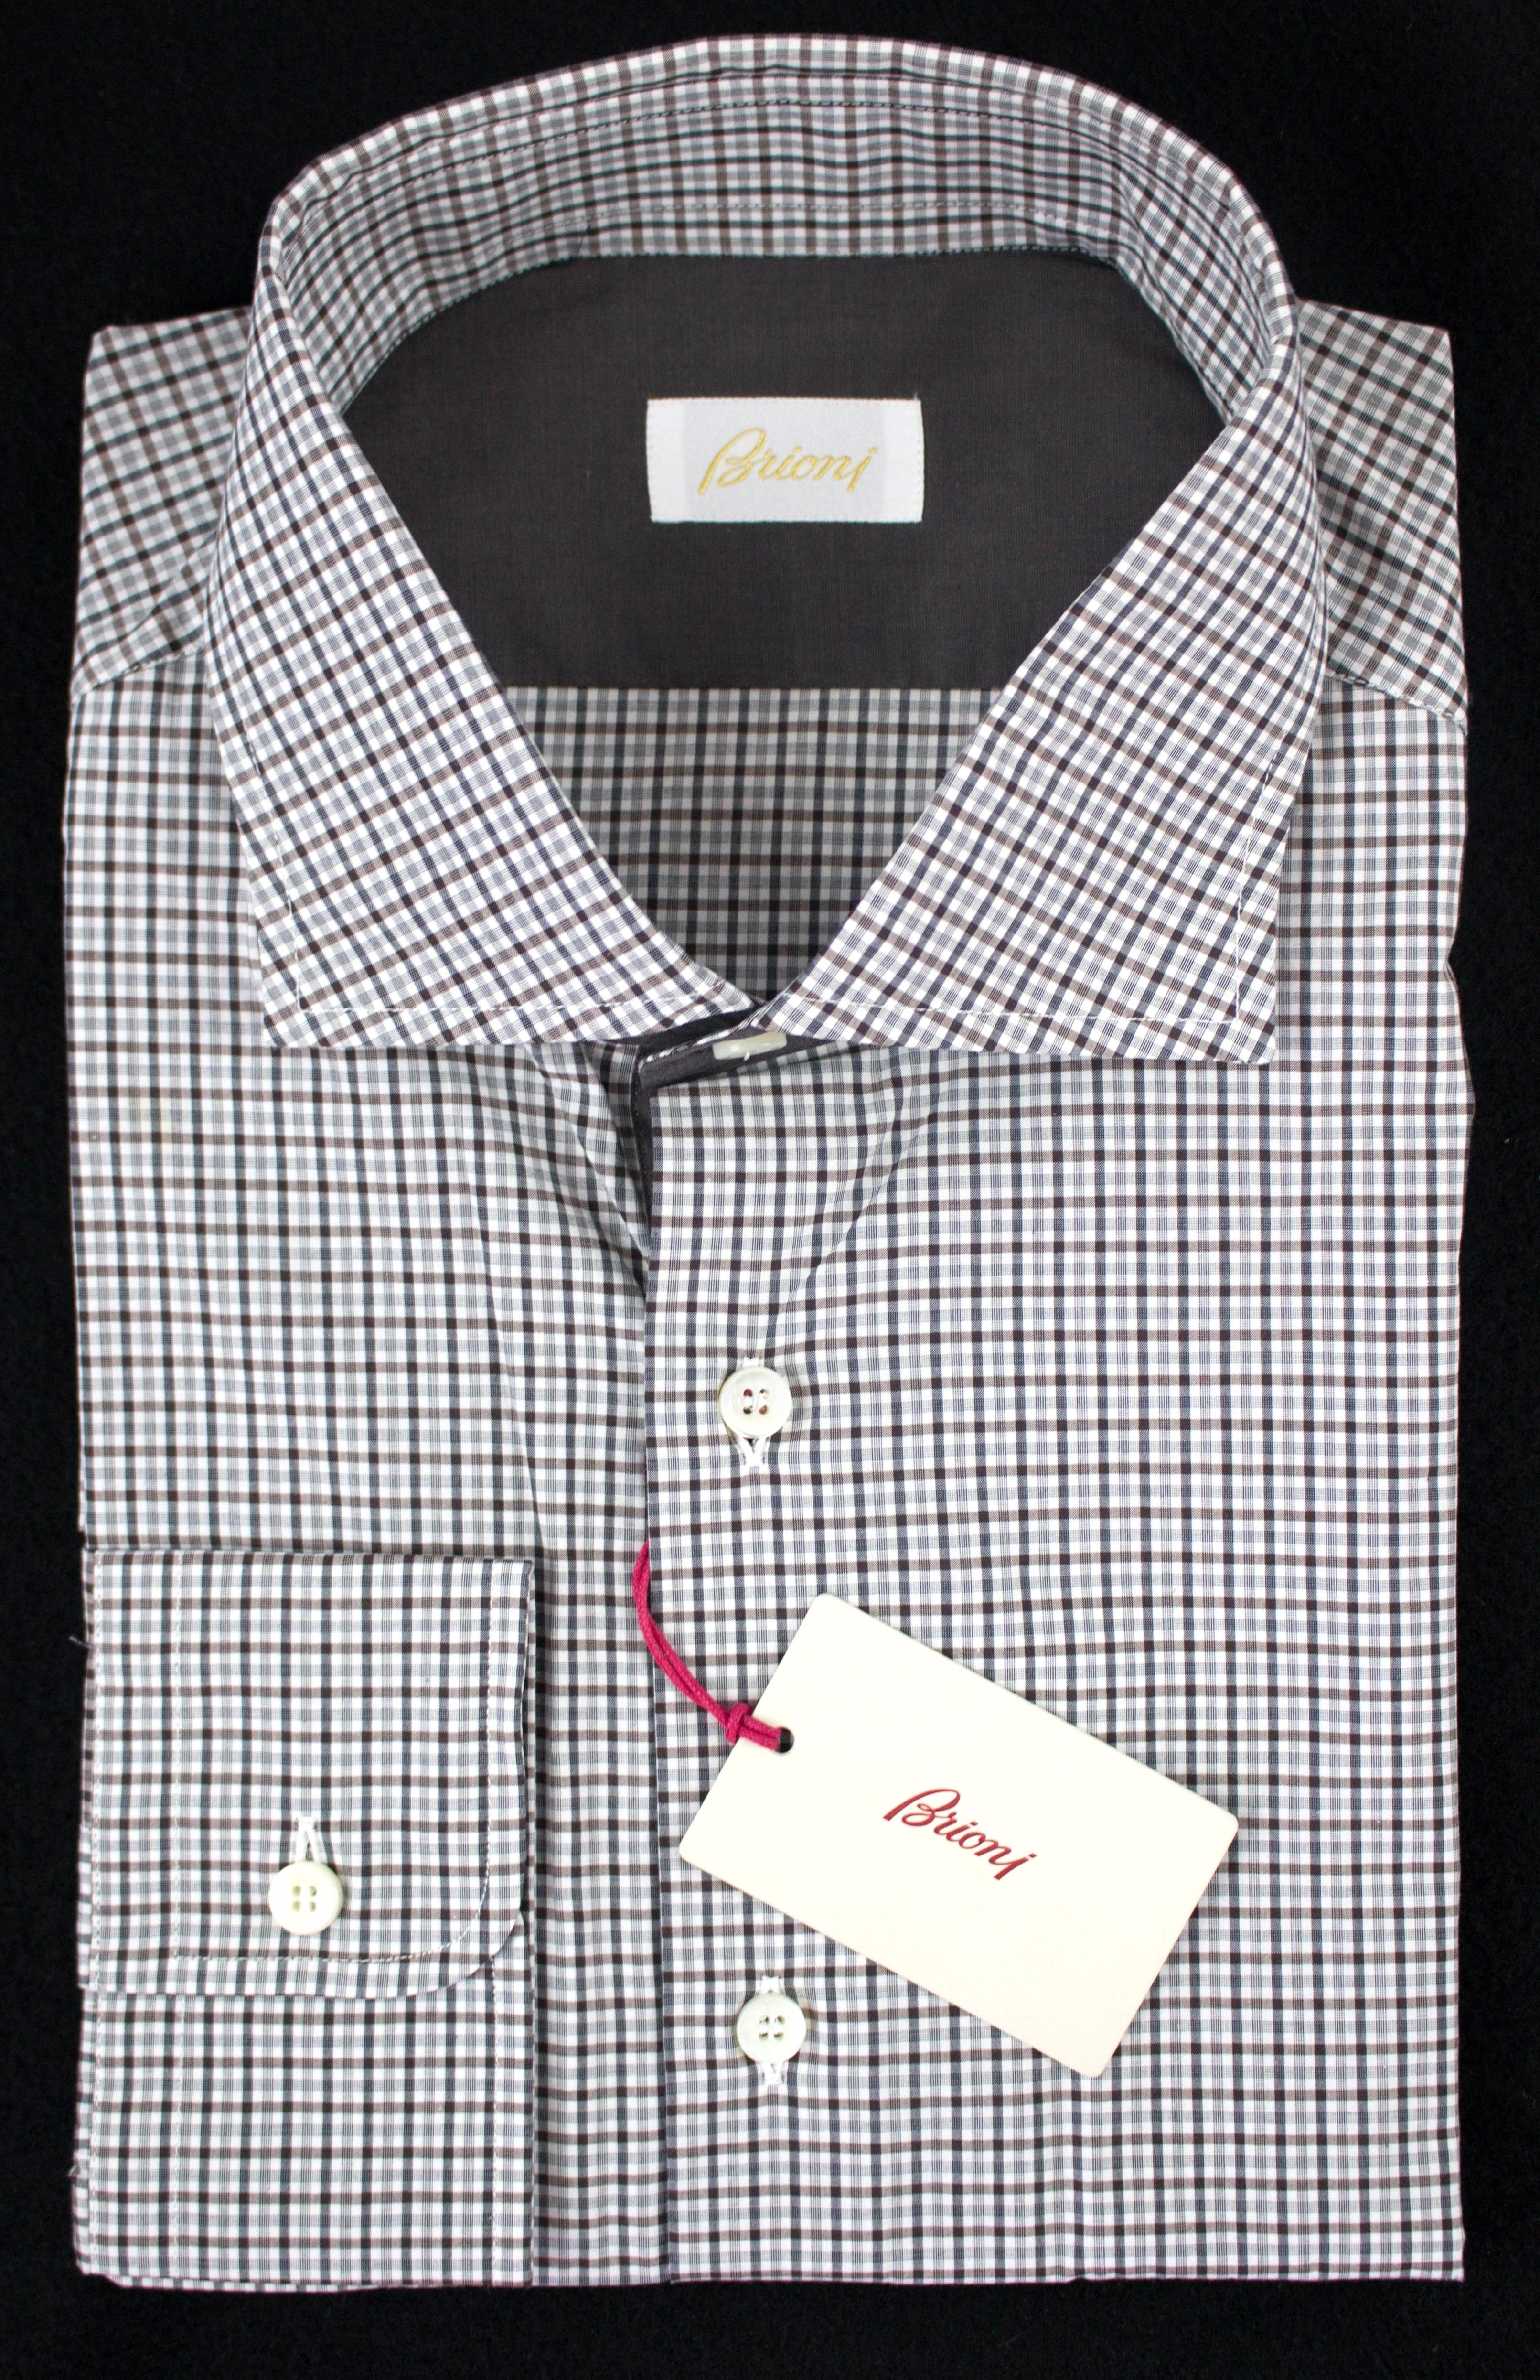 Thin detailed plaid done up in the right colors of this Brioni shirt.     Go shopping: http://www.frieschskys.com/all-shirts/dress-shirts     #frieschskys #mensfashion #fashion #mensstyle #style #moda #menswear #dapper #stylish #MadeInItaly #Italy #couture #highfashion #designer #shopping